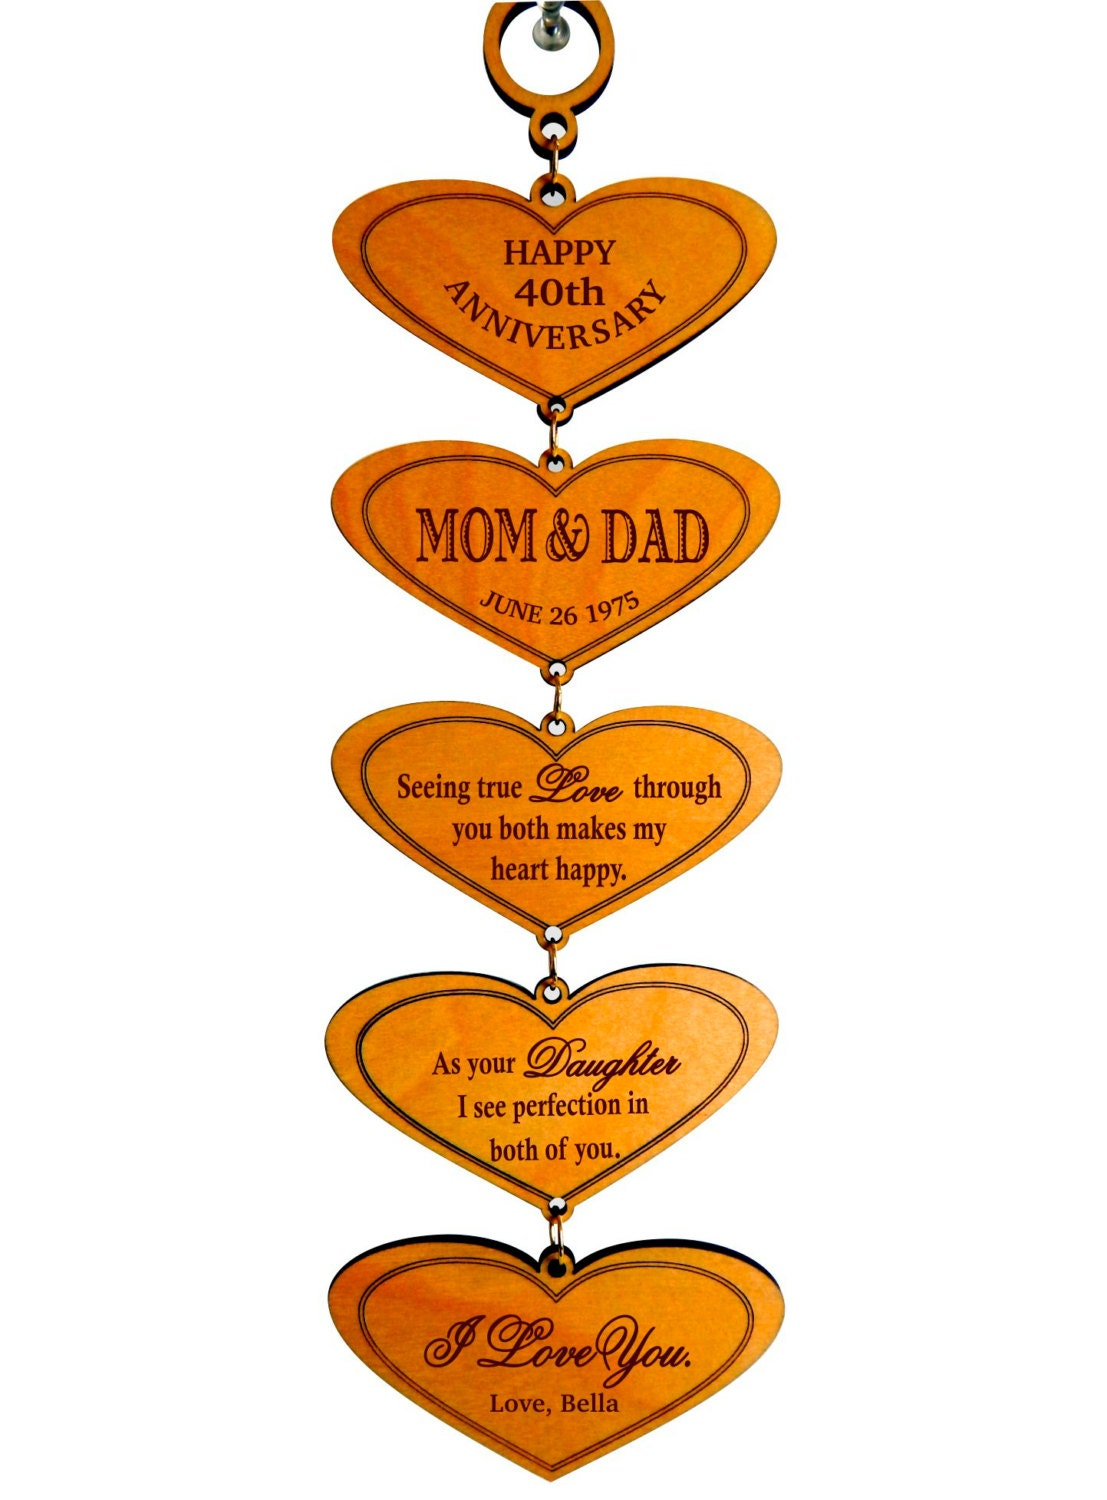 Wedding Anniversary Gift For Mom And Dad : 40th Wedding Anniversary Gift for Mom and Dad from